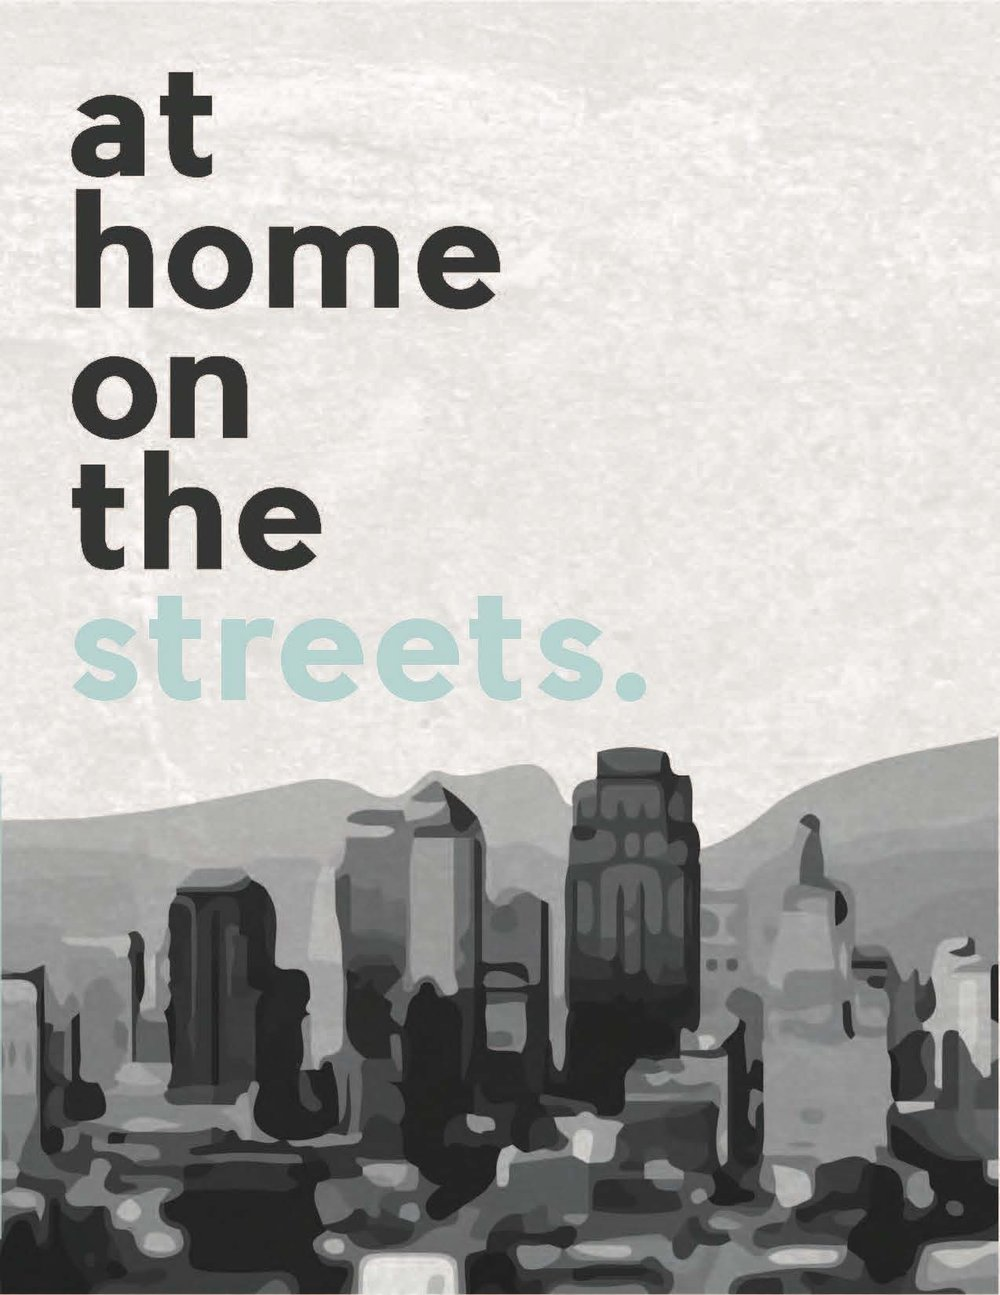 At Home on the Streets - Homelessness in our Backyard